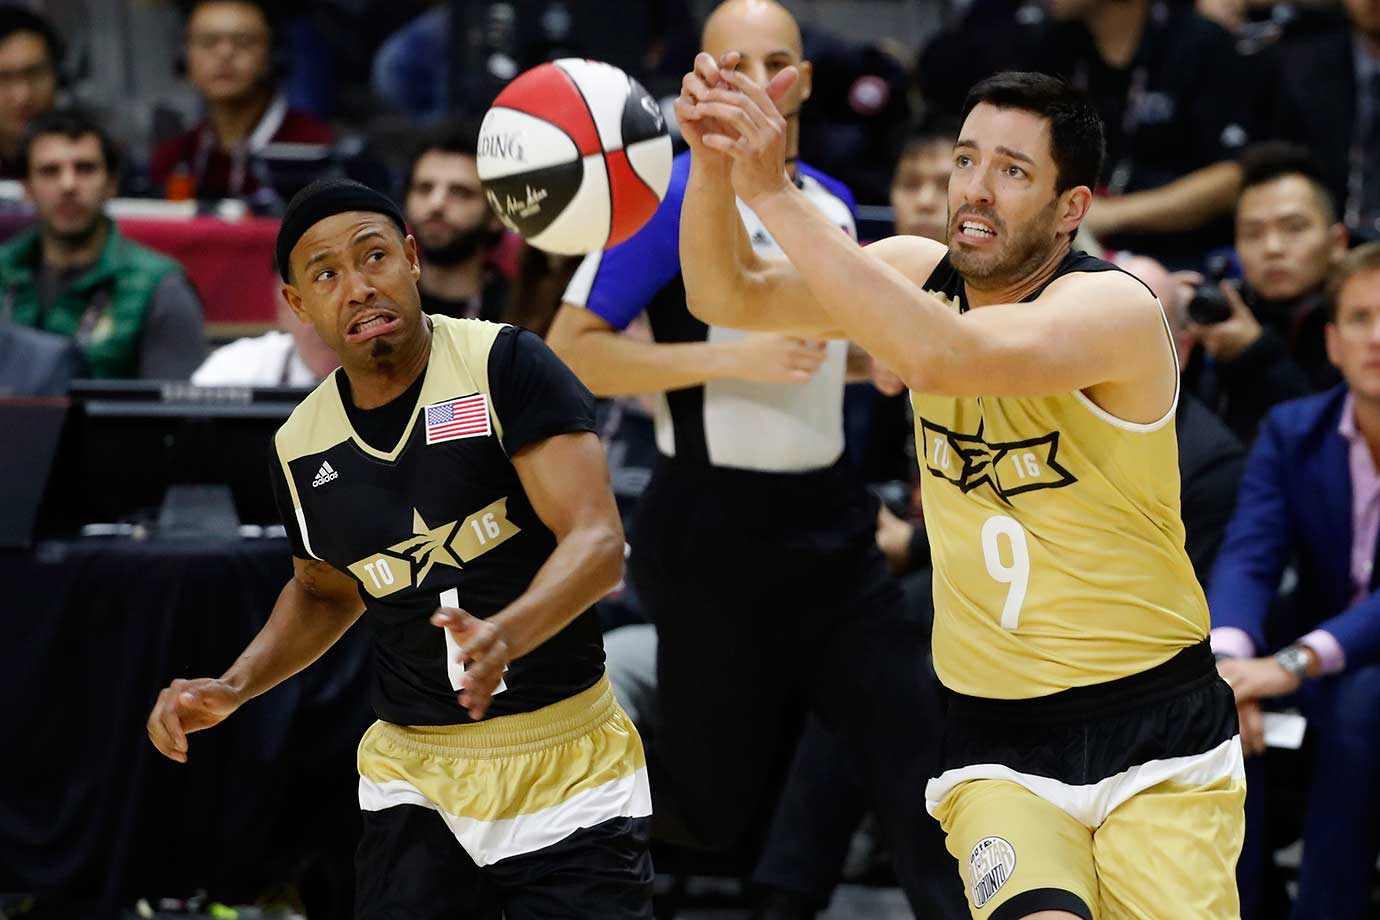 Terrence Jenkins, left, and Jonathan Scott scramble for the ball during the NBA All-Star celebrity game.